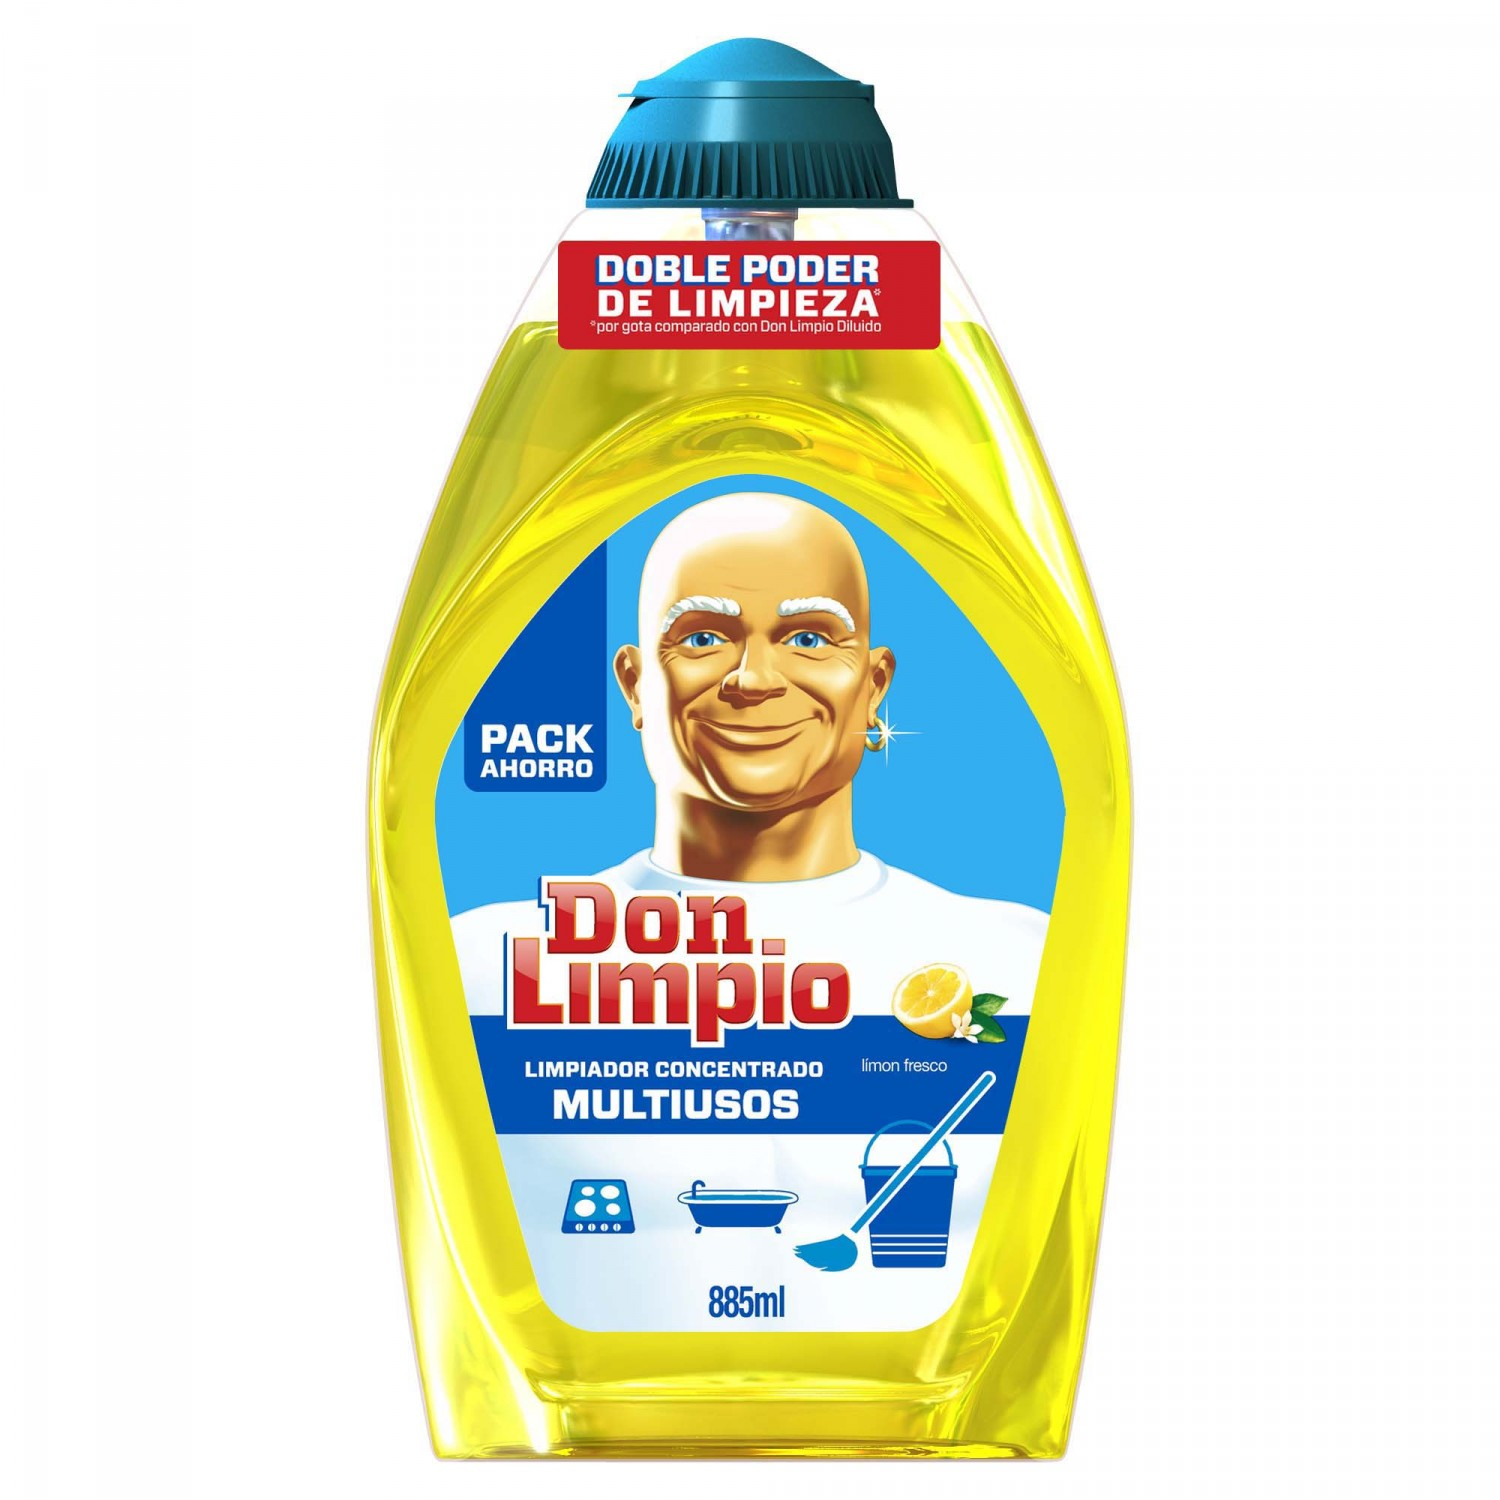 Don Limpio limpiador en gel concentrado limon fresco de 88,5cl. en botella